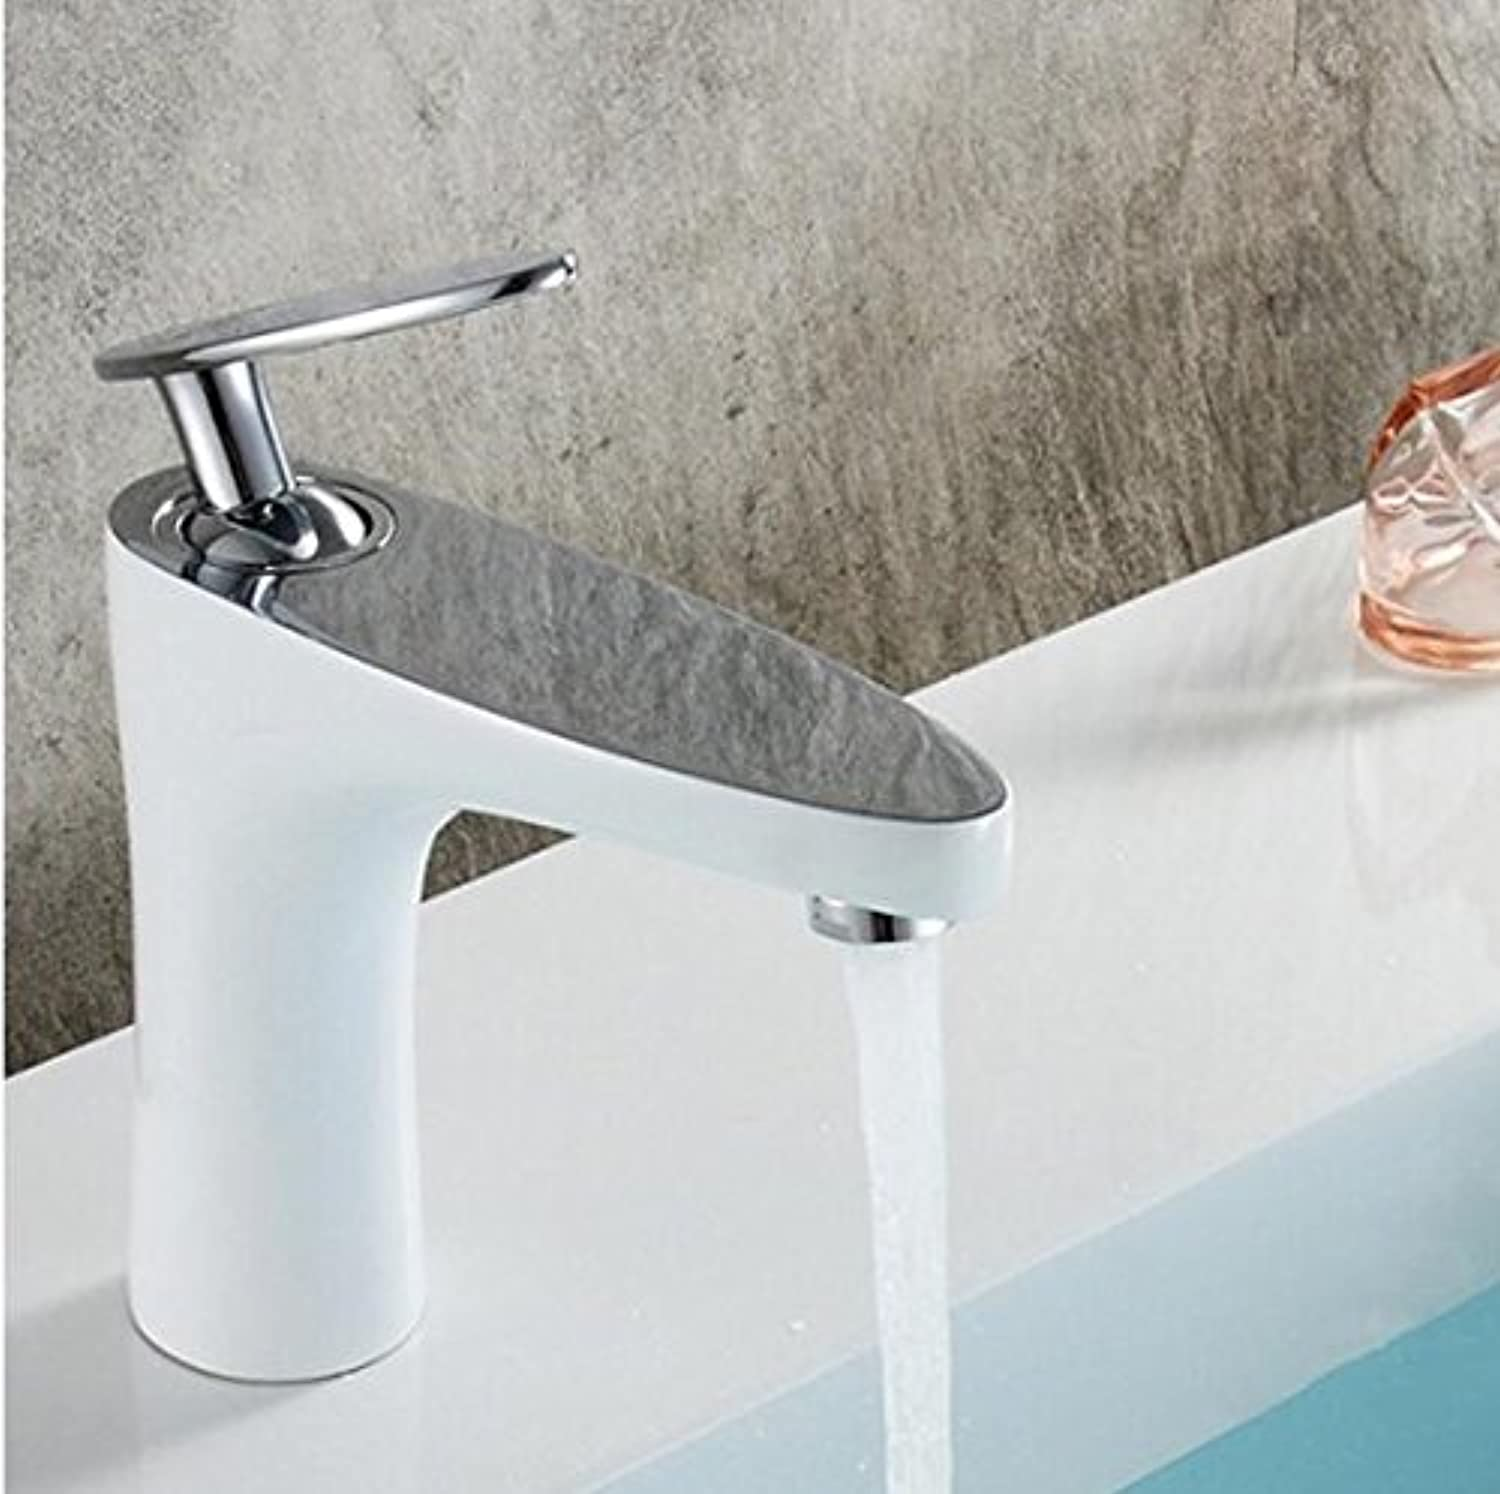 ROKTONG Bathroom Basin Brass Faucet Weiß Painting, schwarz Painting, Golden Faucet. Basin Sink Mixer Tap hot&Cold Leaves,F